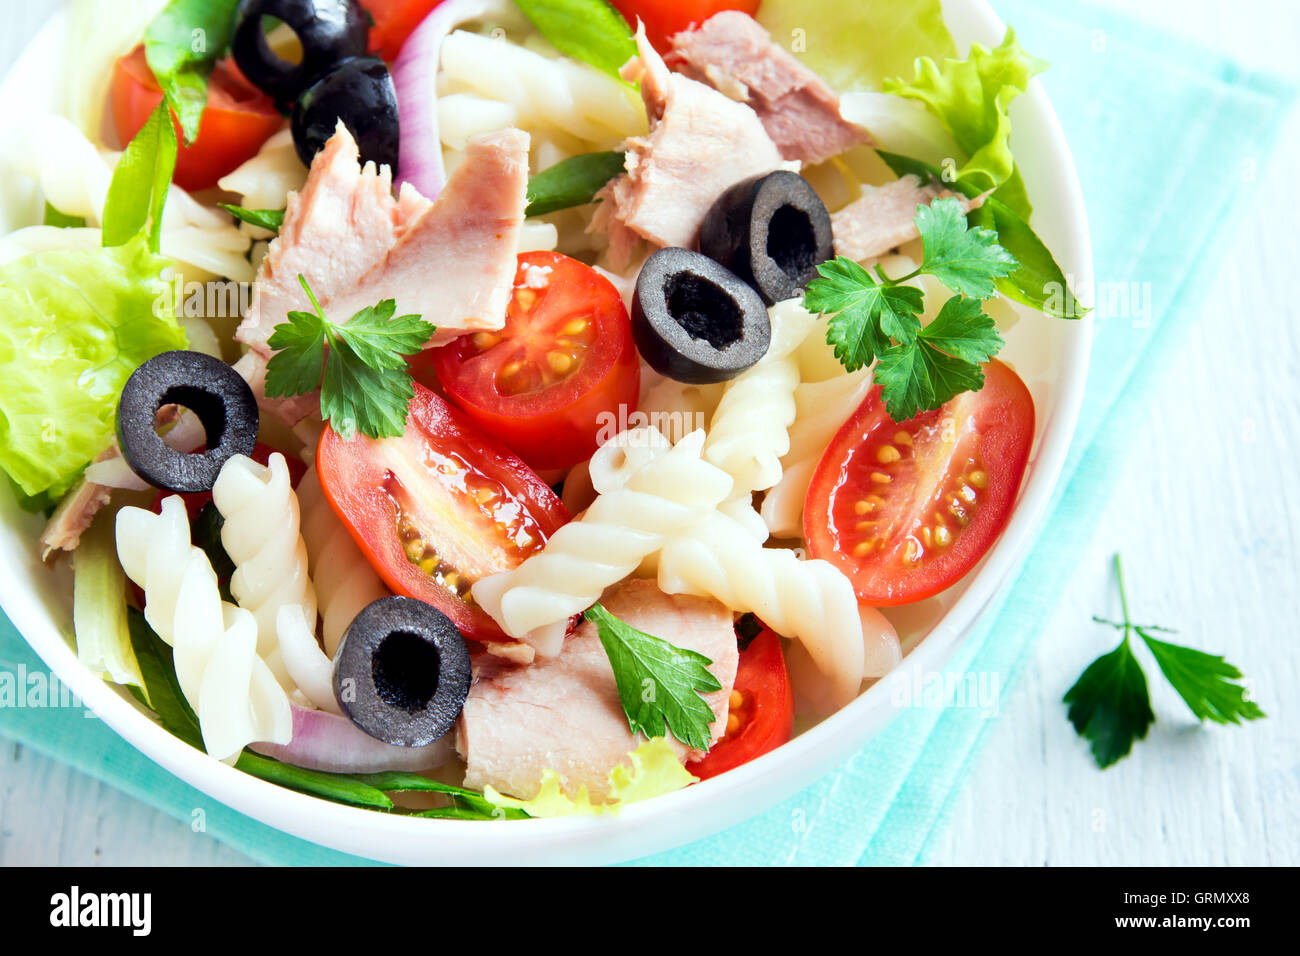 Tuna and pasta salad with fresh tomatoes, olives, herbs close up - Stock Image